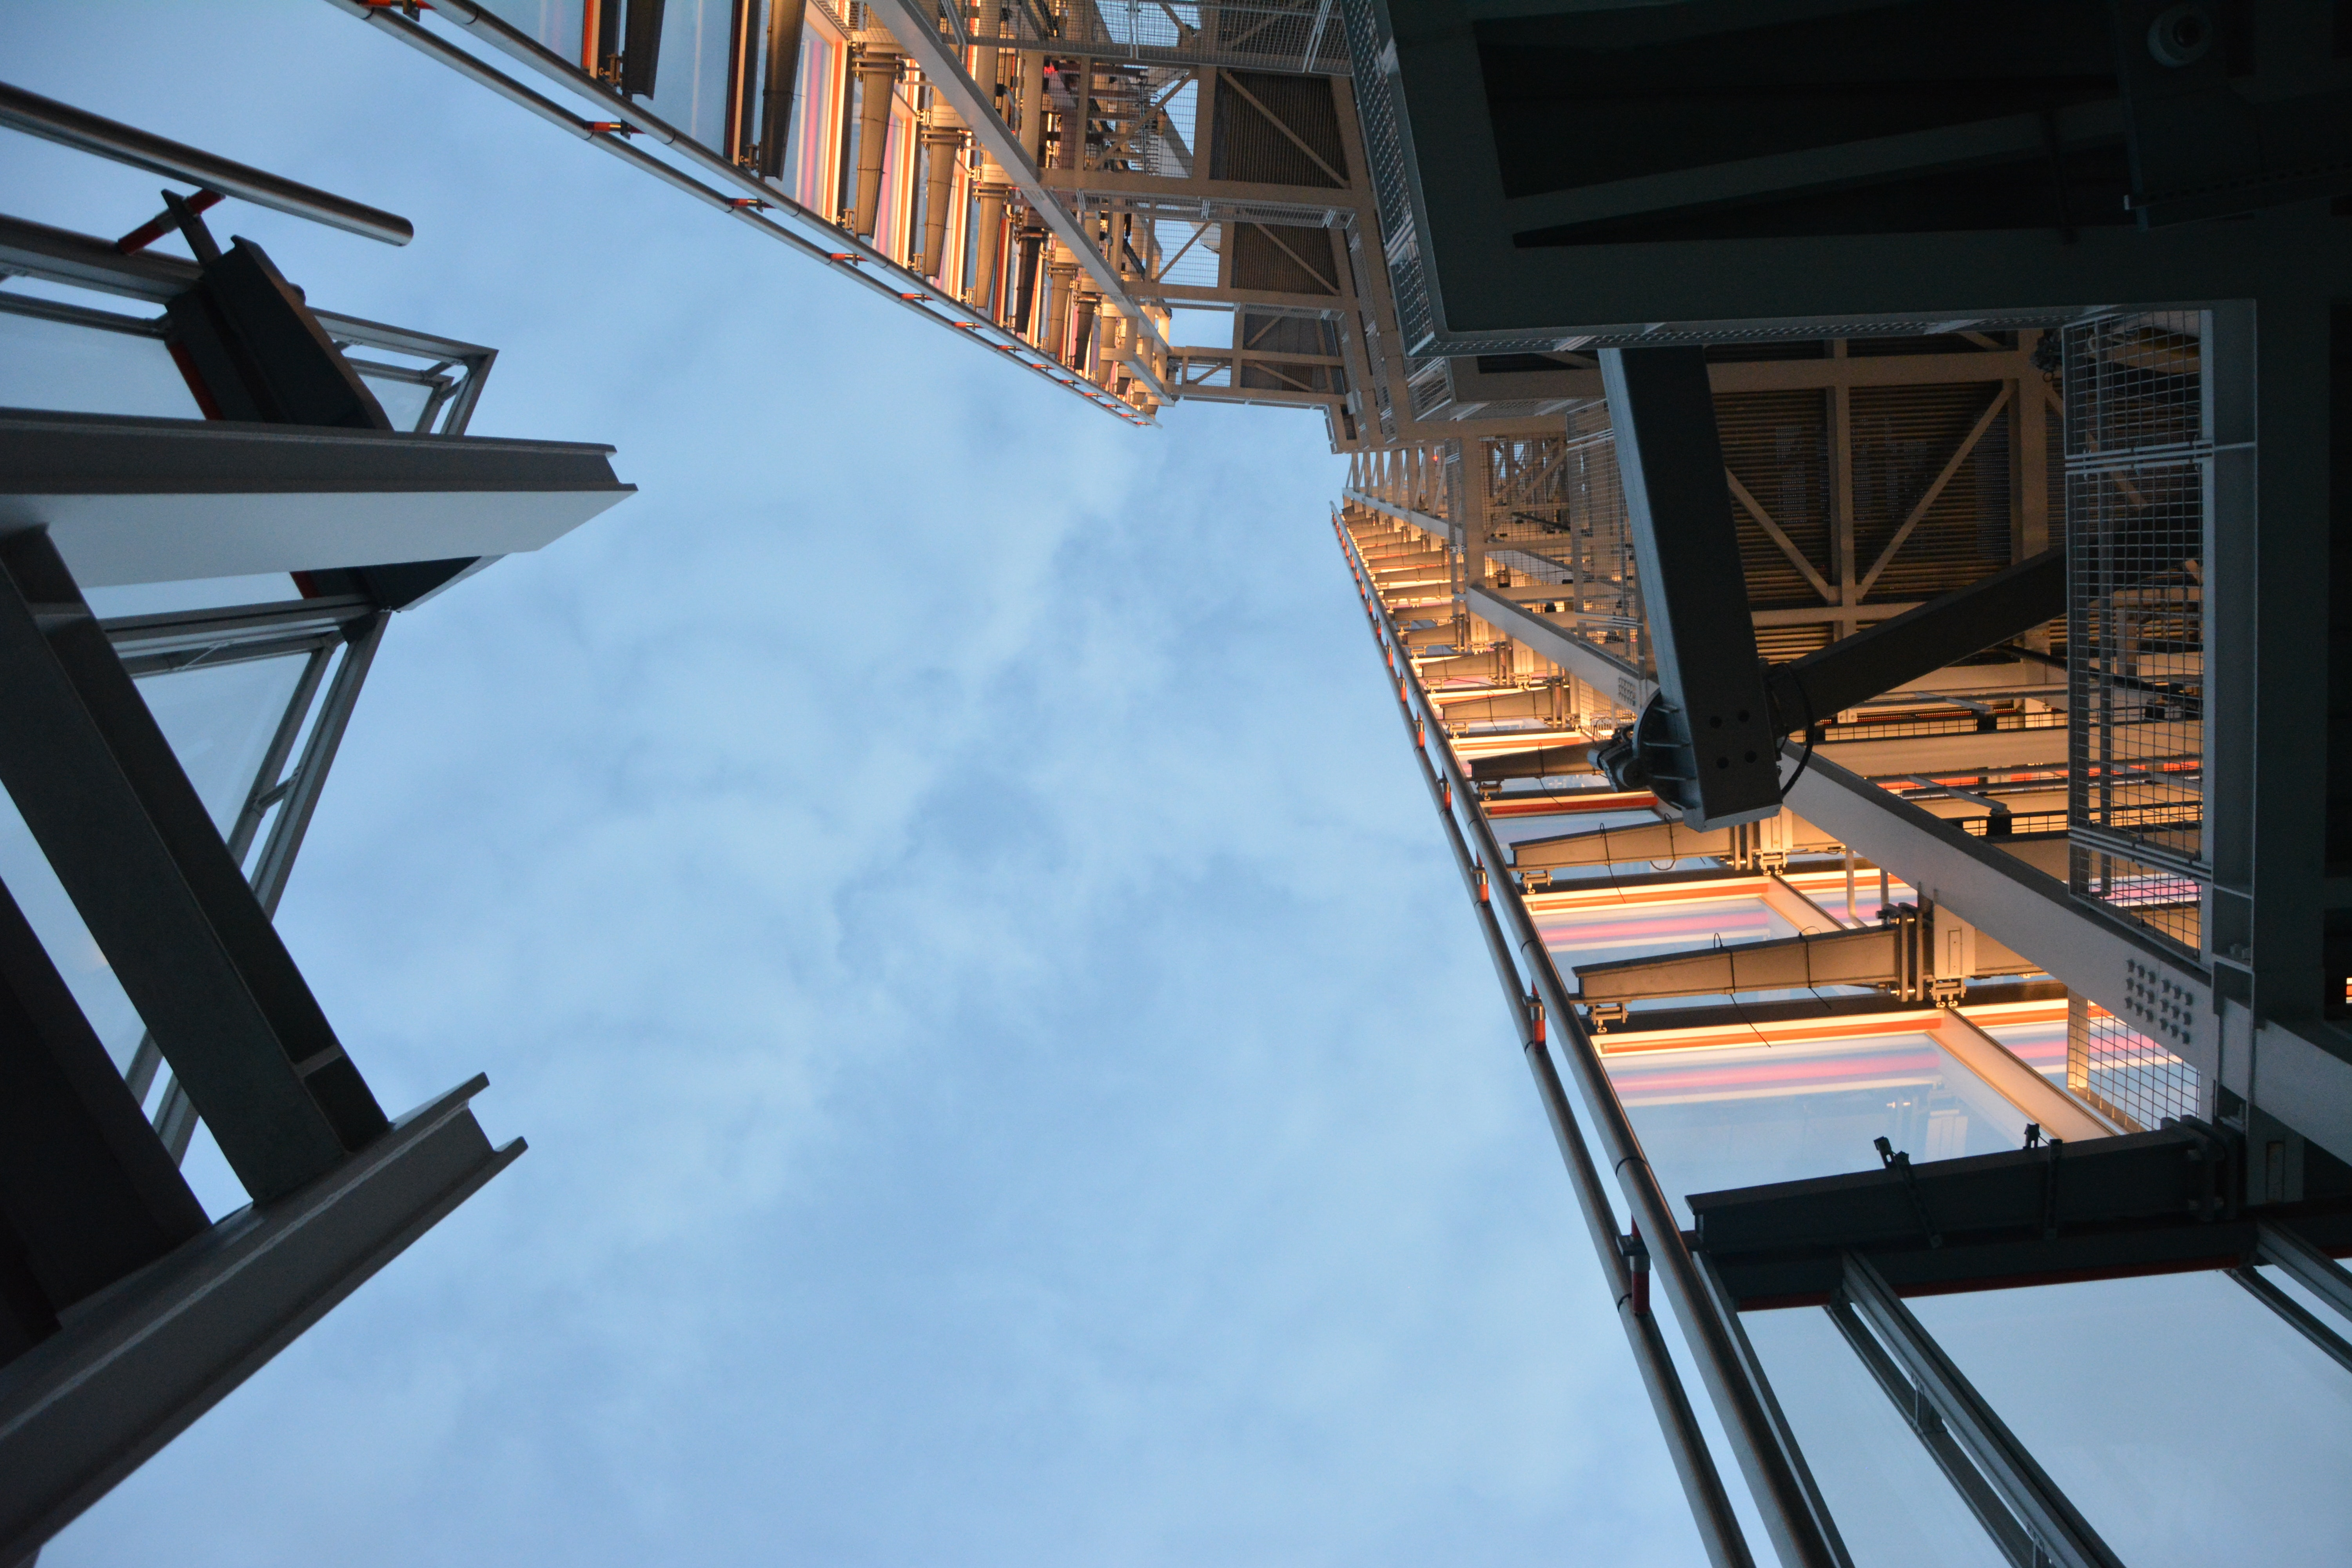 High Rise Building Low Angle Photography, Architecture, Building, Construction, Daylight, HQ Photo